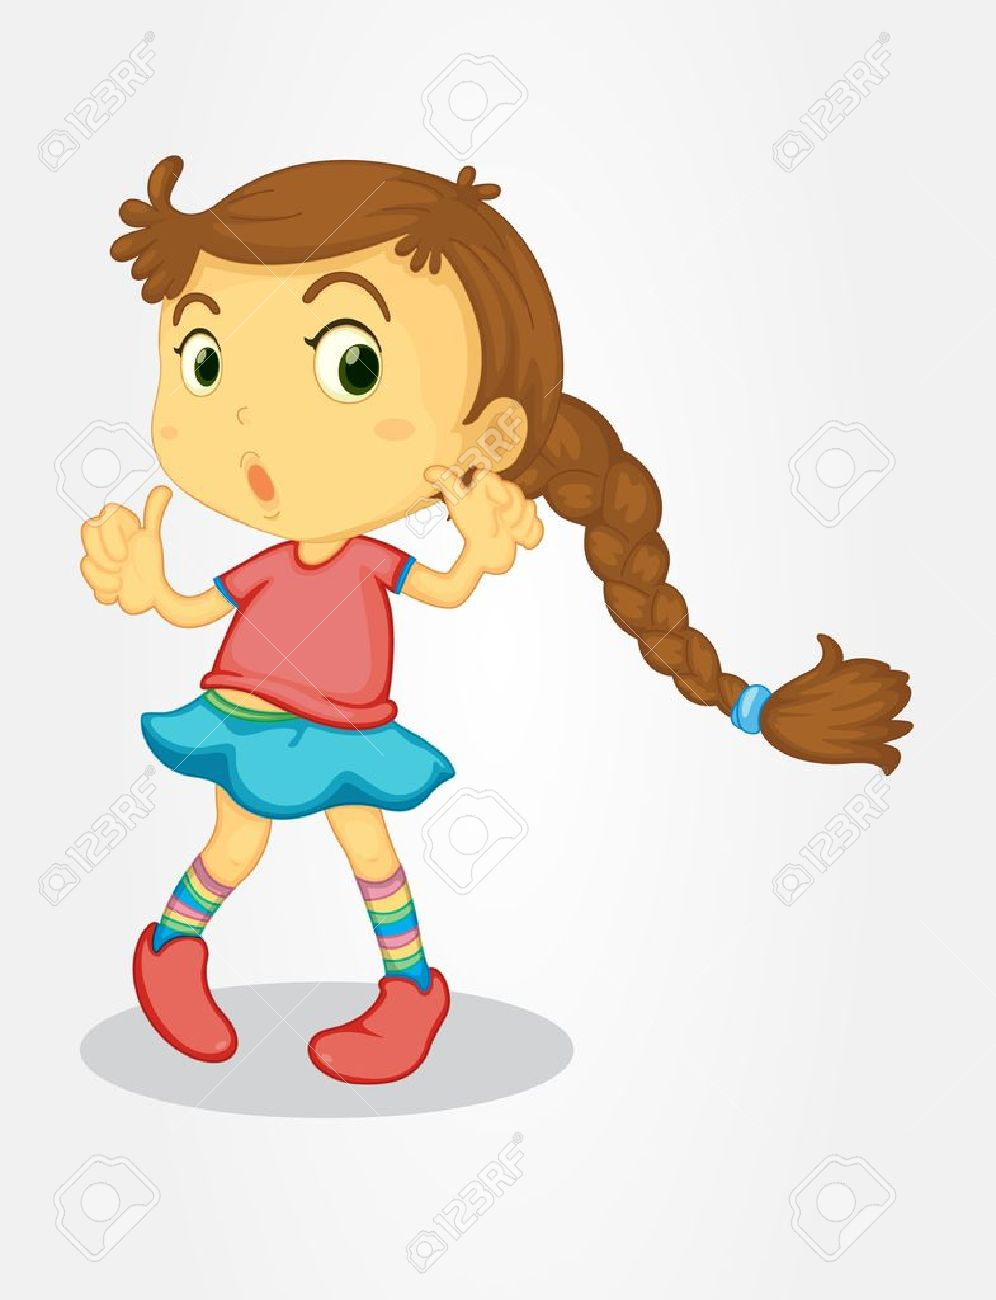 illustration of young girl with long hair royalty free cliparts rh 123rf com how to draw a cartoon girl with long hair cartoon girl with long black hair